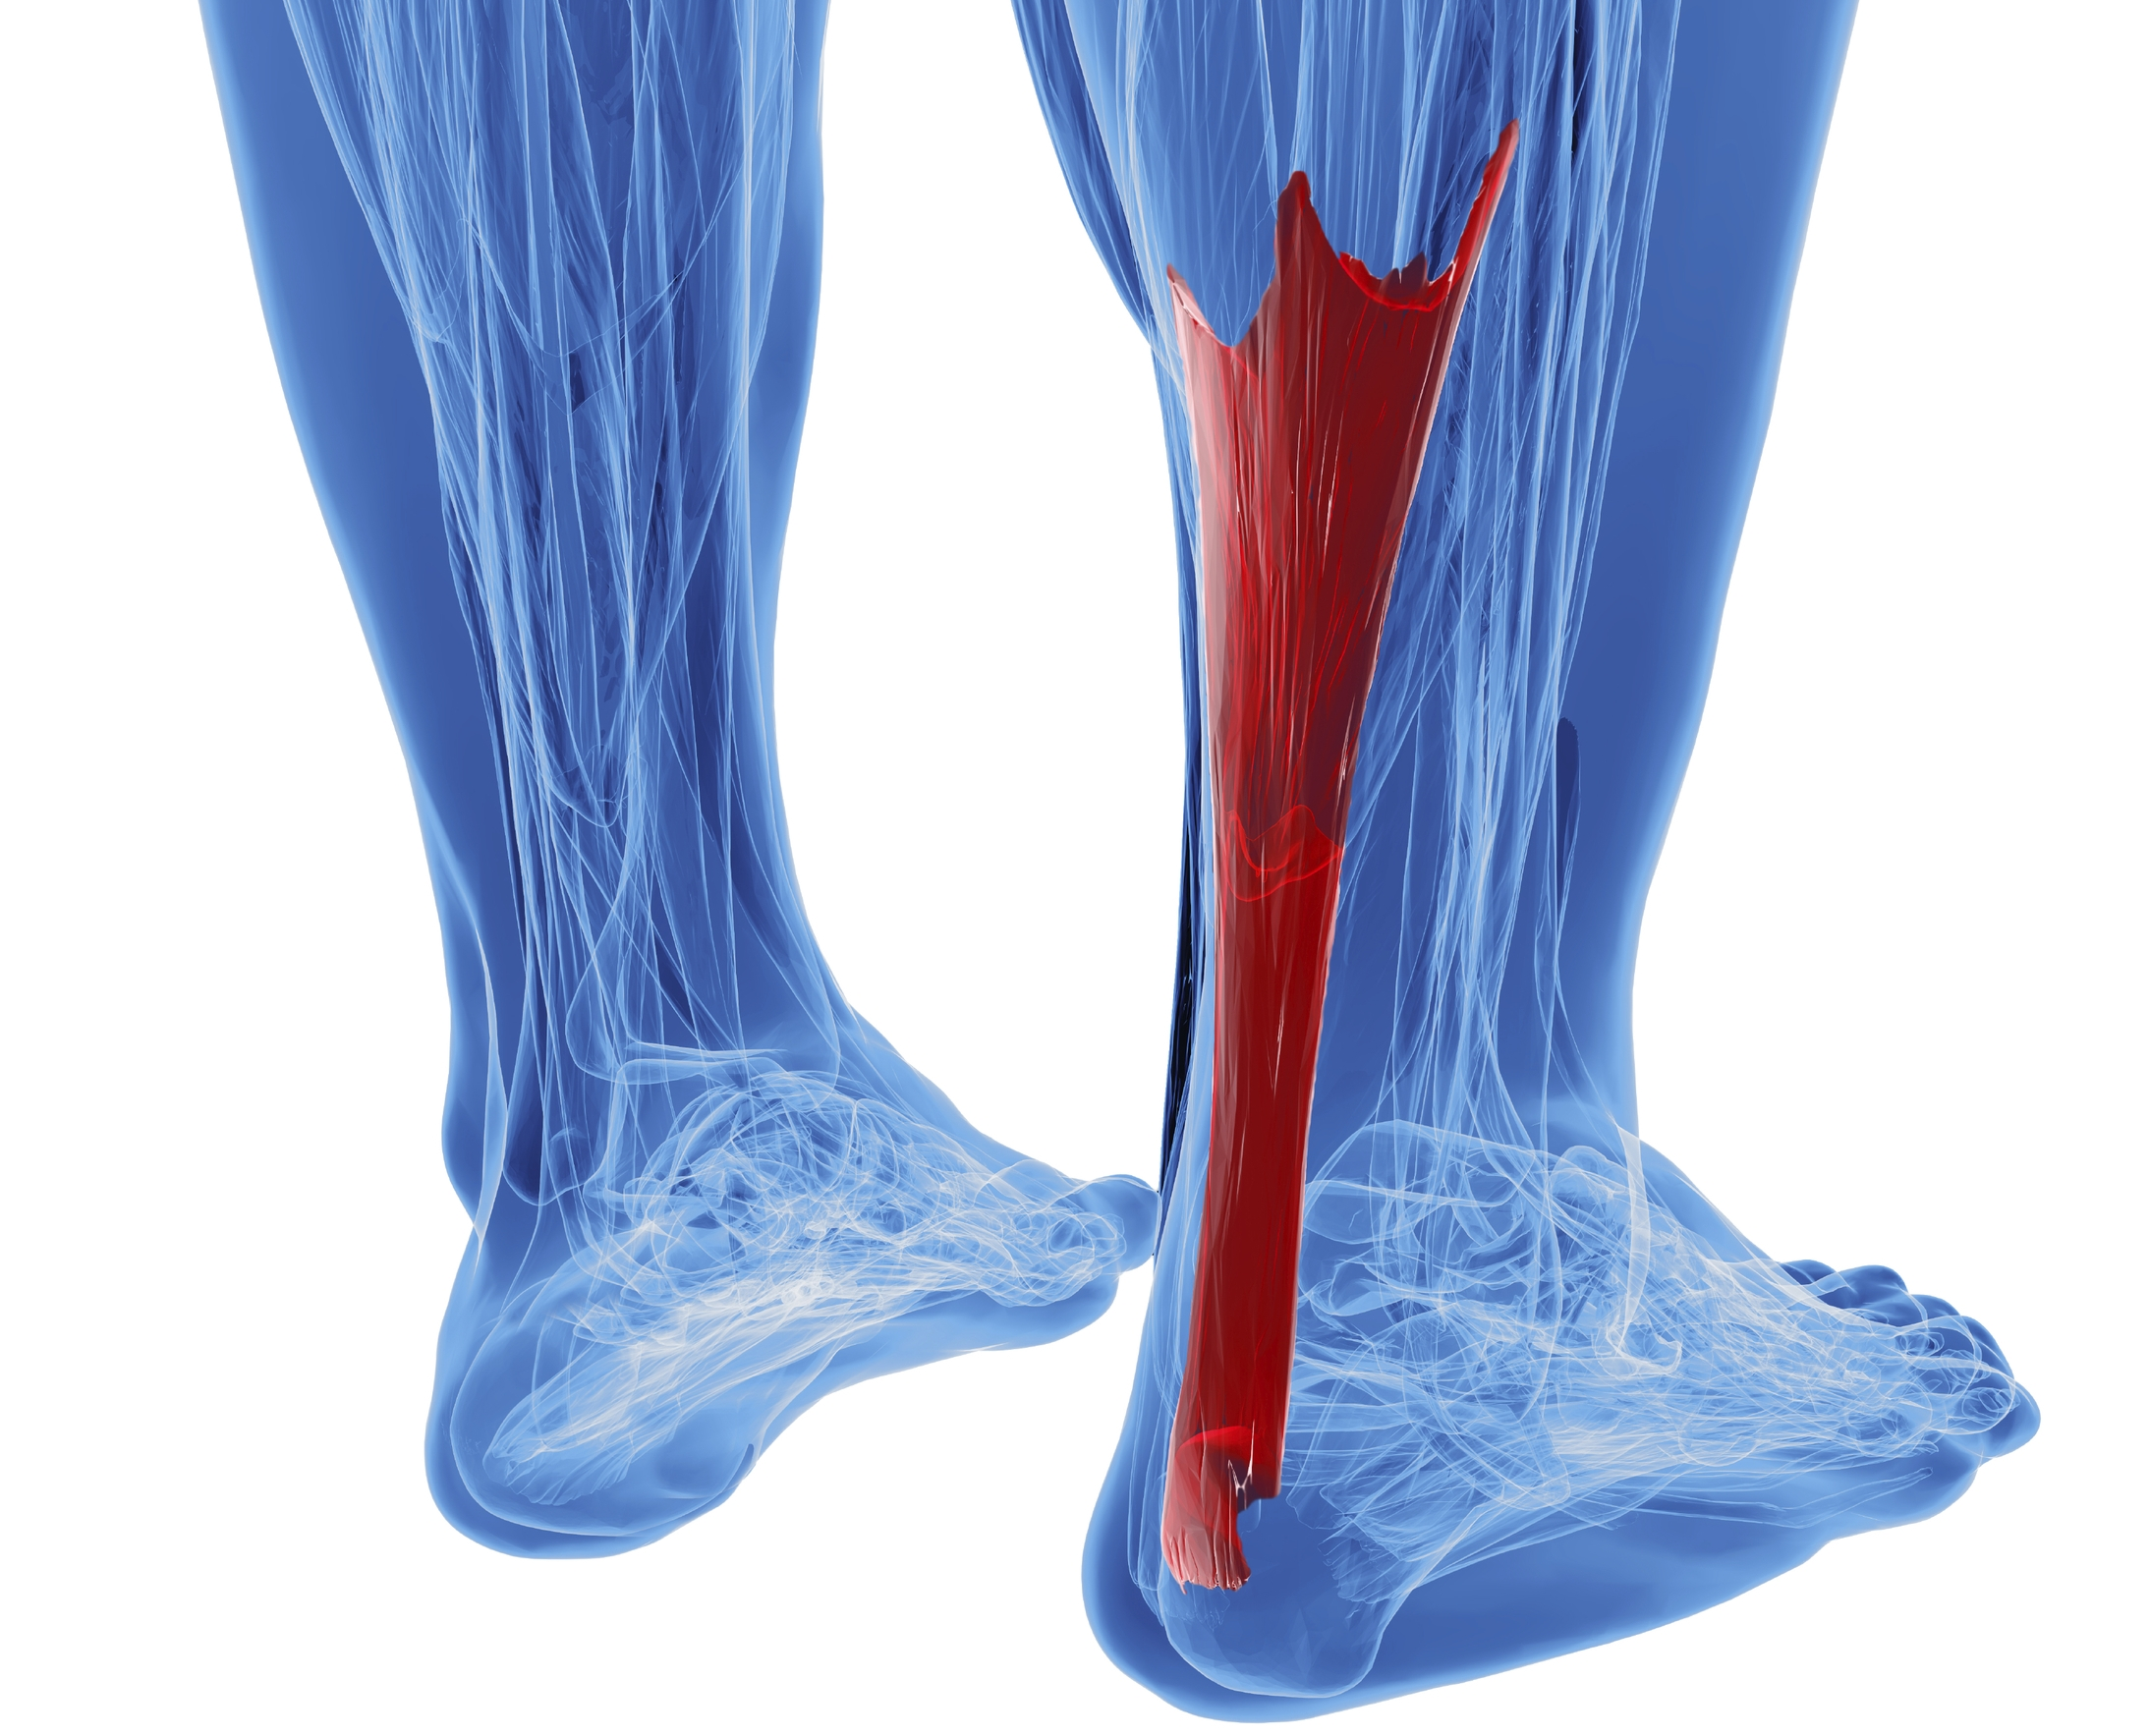 Achilles Tendinitis is common injury resulting from overuse.